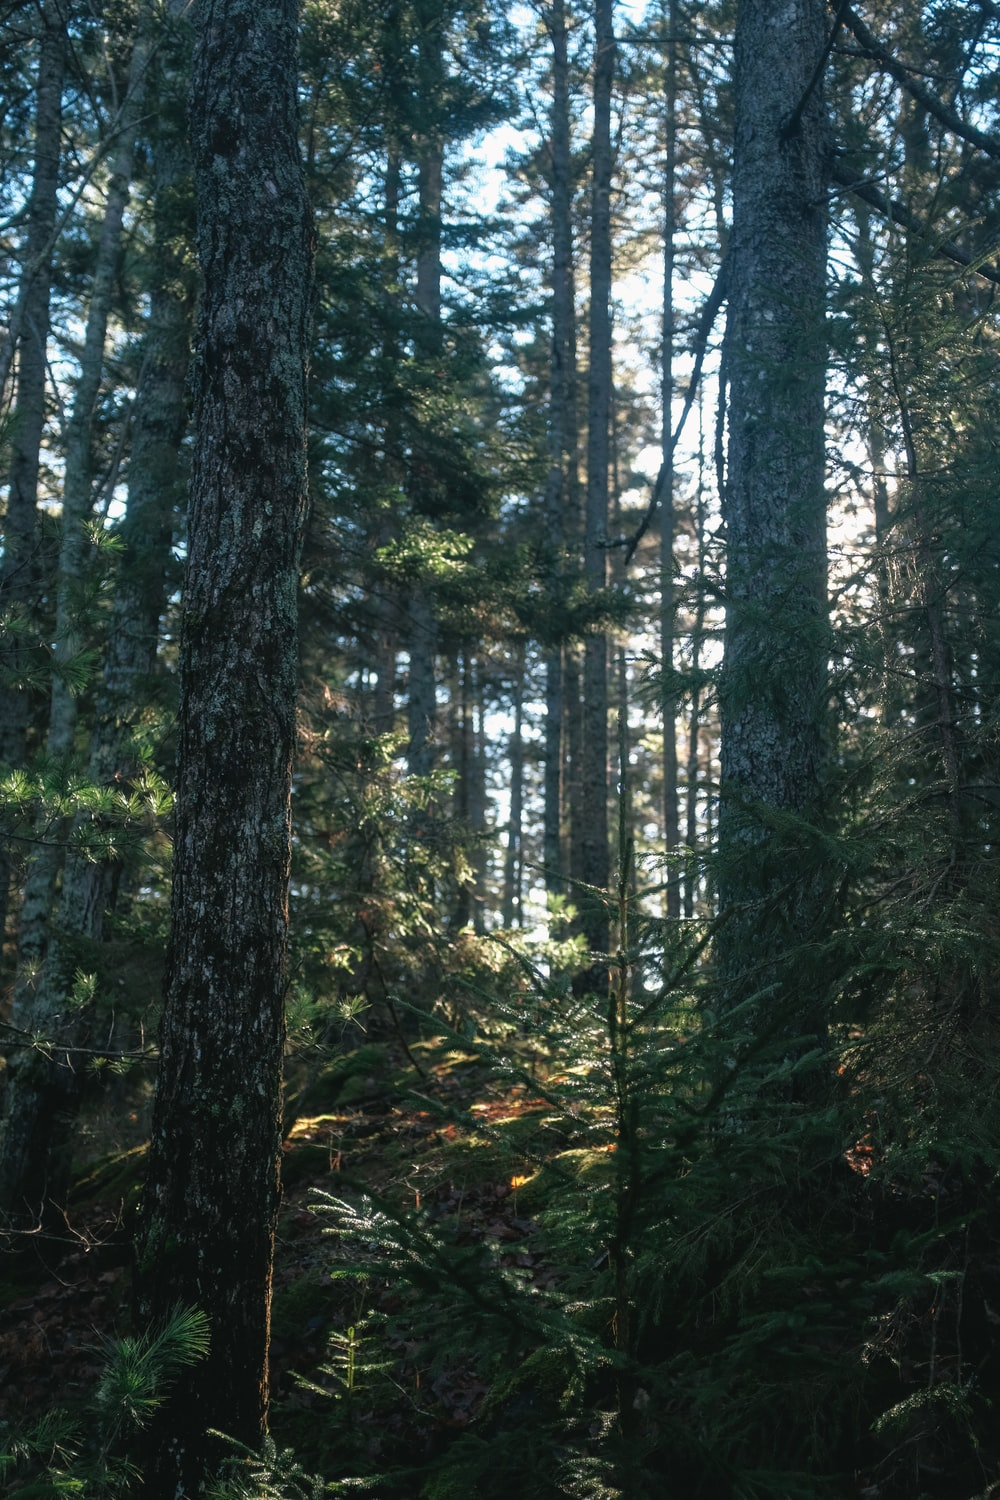 green trees in forest during daytime